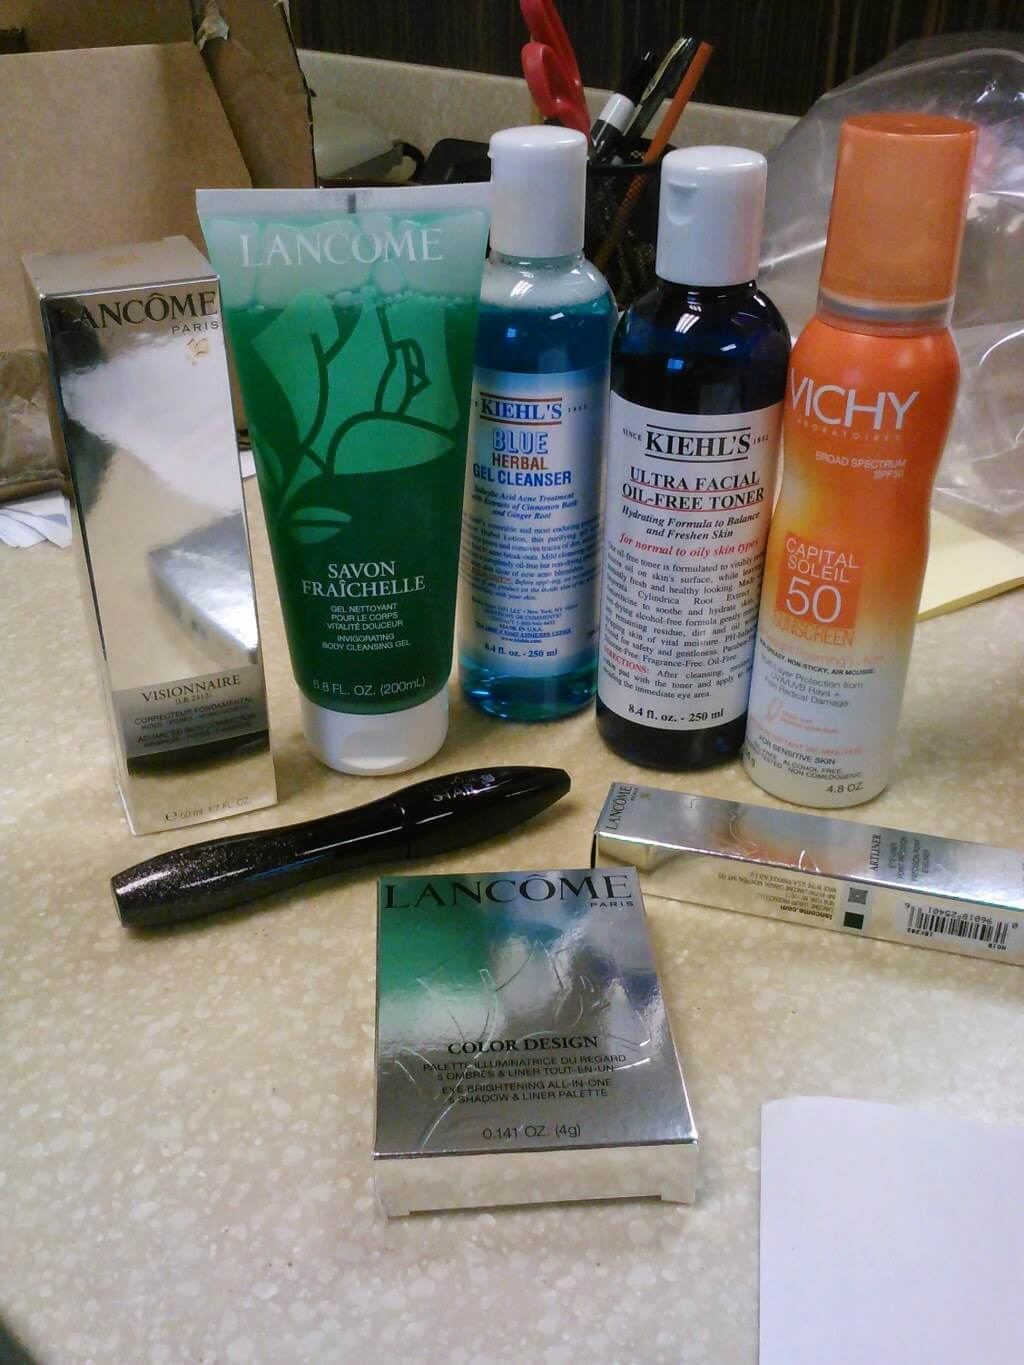 Product Testing - Free Beauty Products from L'Oreal